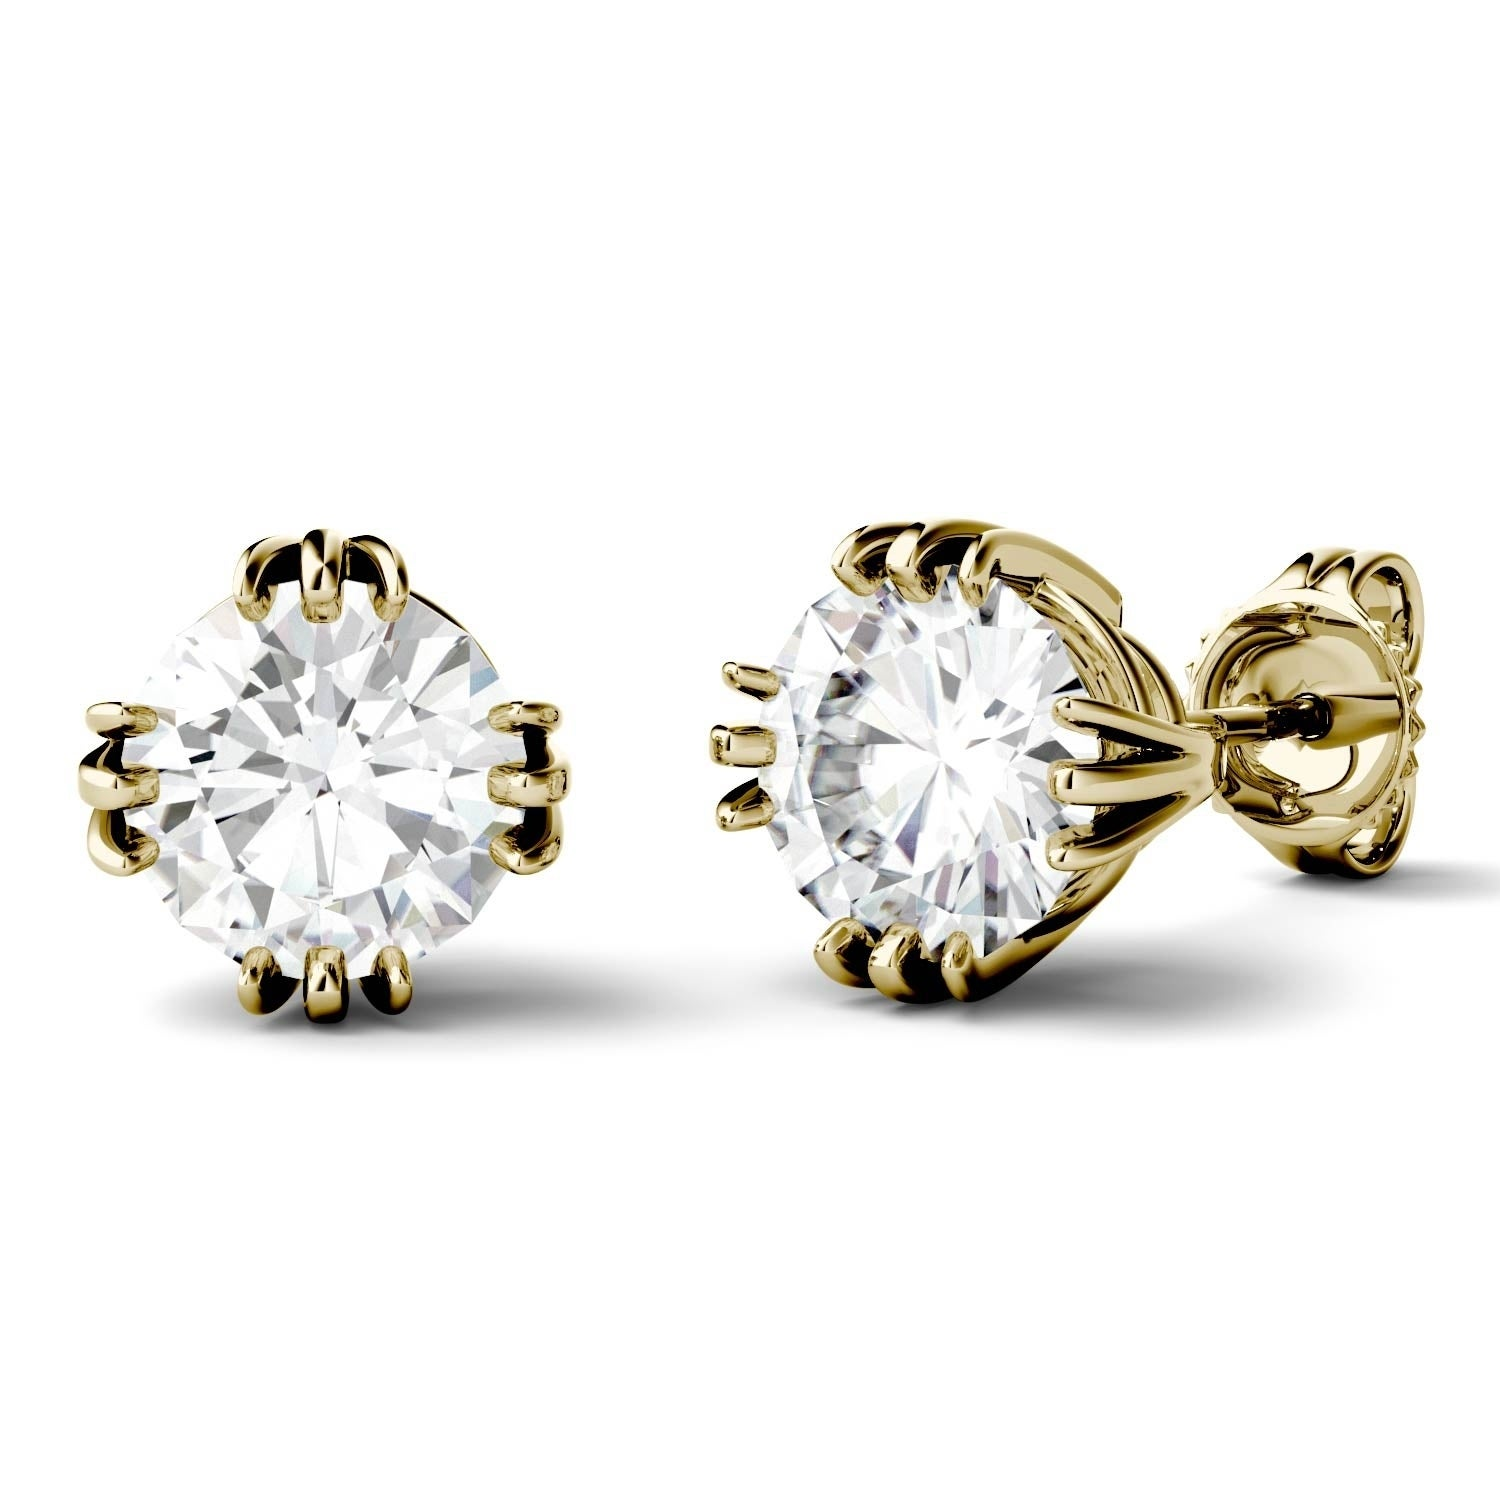 london the buckley buckleylondon earrings pin stud diamond cut one com carat brilliant